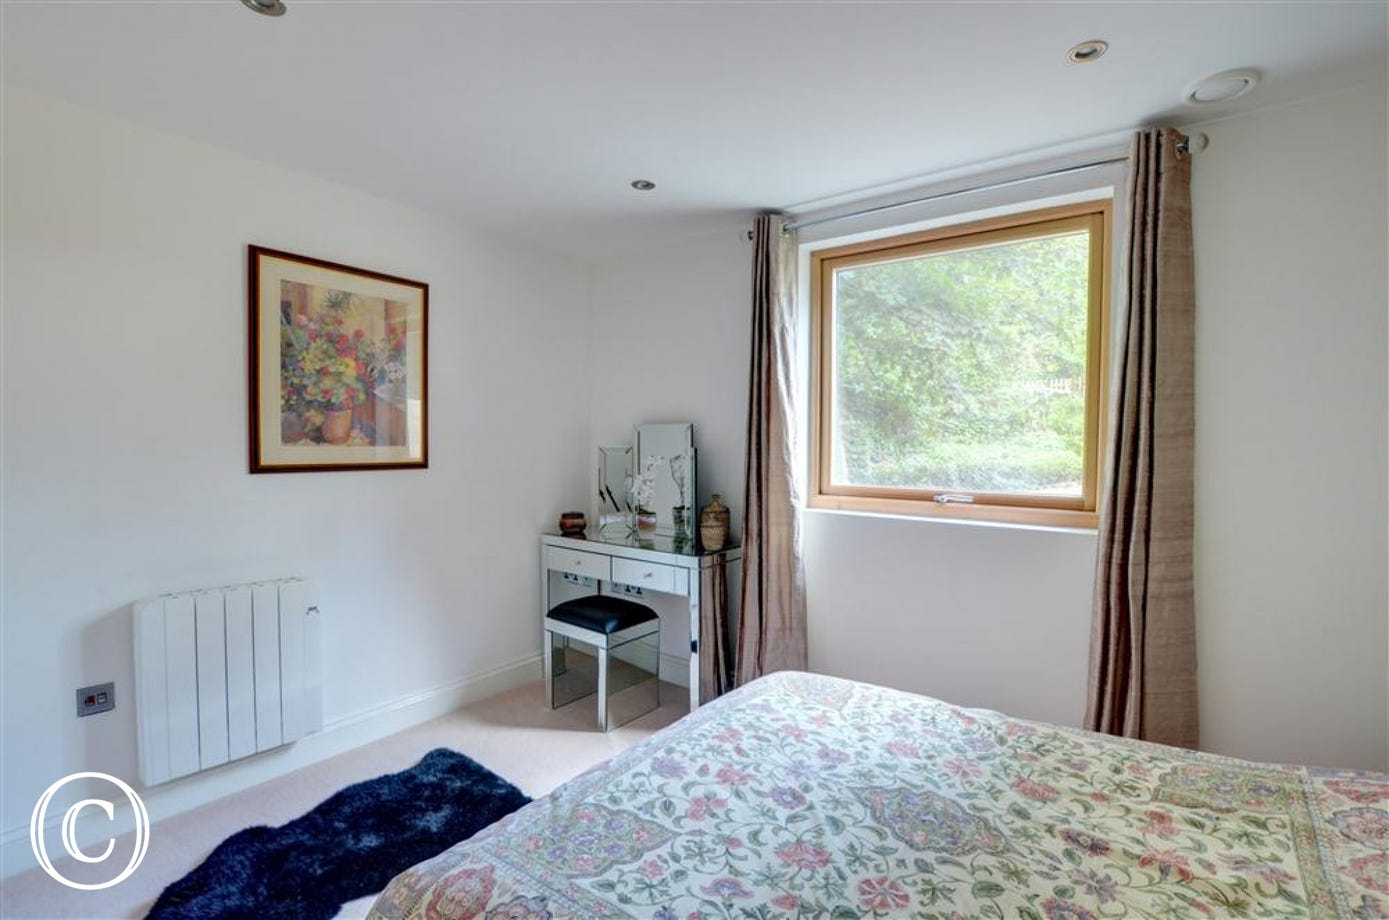 The master bedroom has an en-suite shower room, this view shows the dressing table and chair